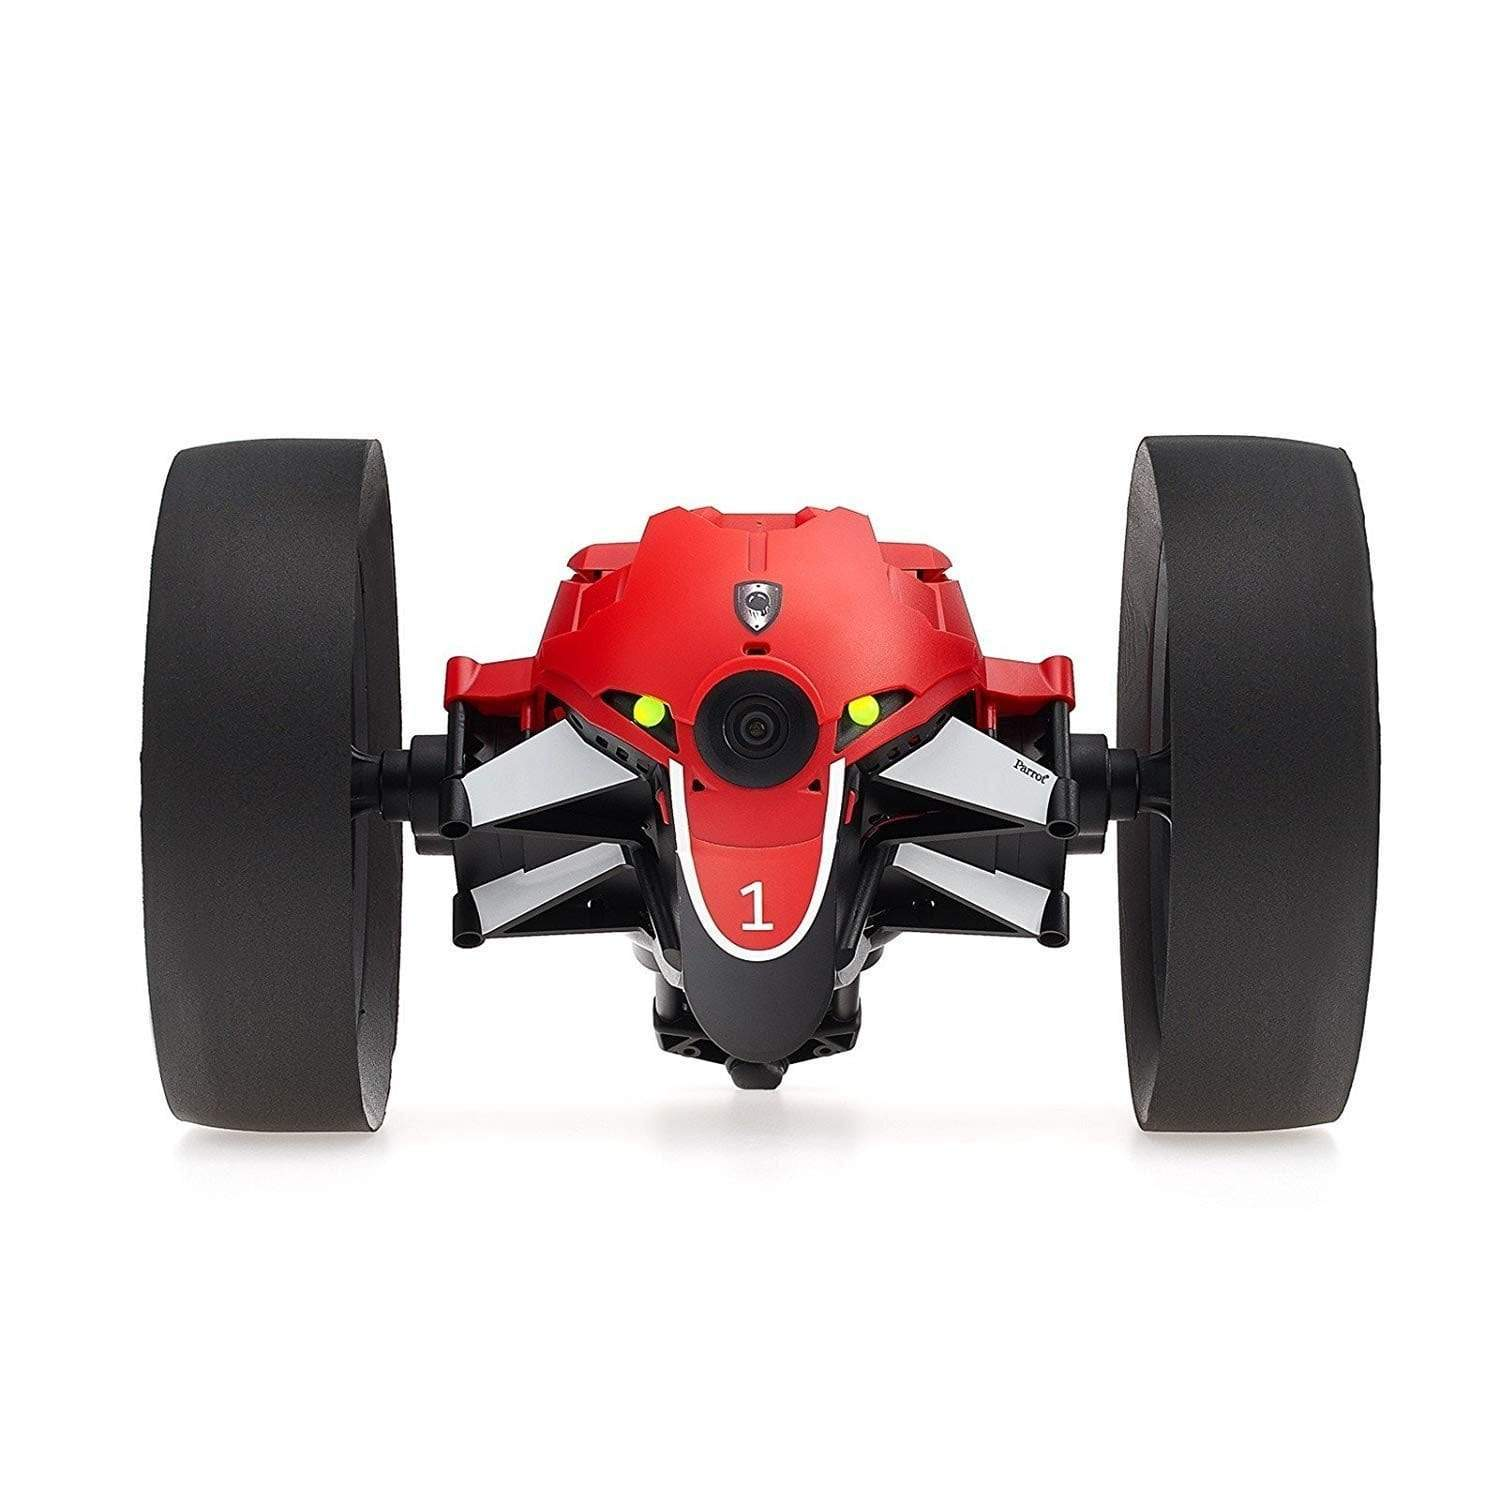 Parrot MiniDrones Jumping Race Drone Max - jumps over 75cm high or wide on demand (Red) by Parrot